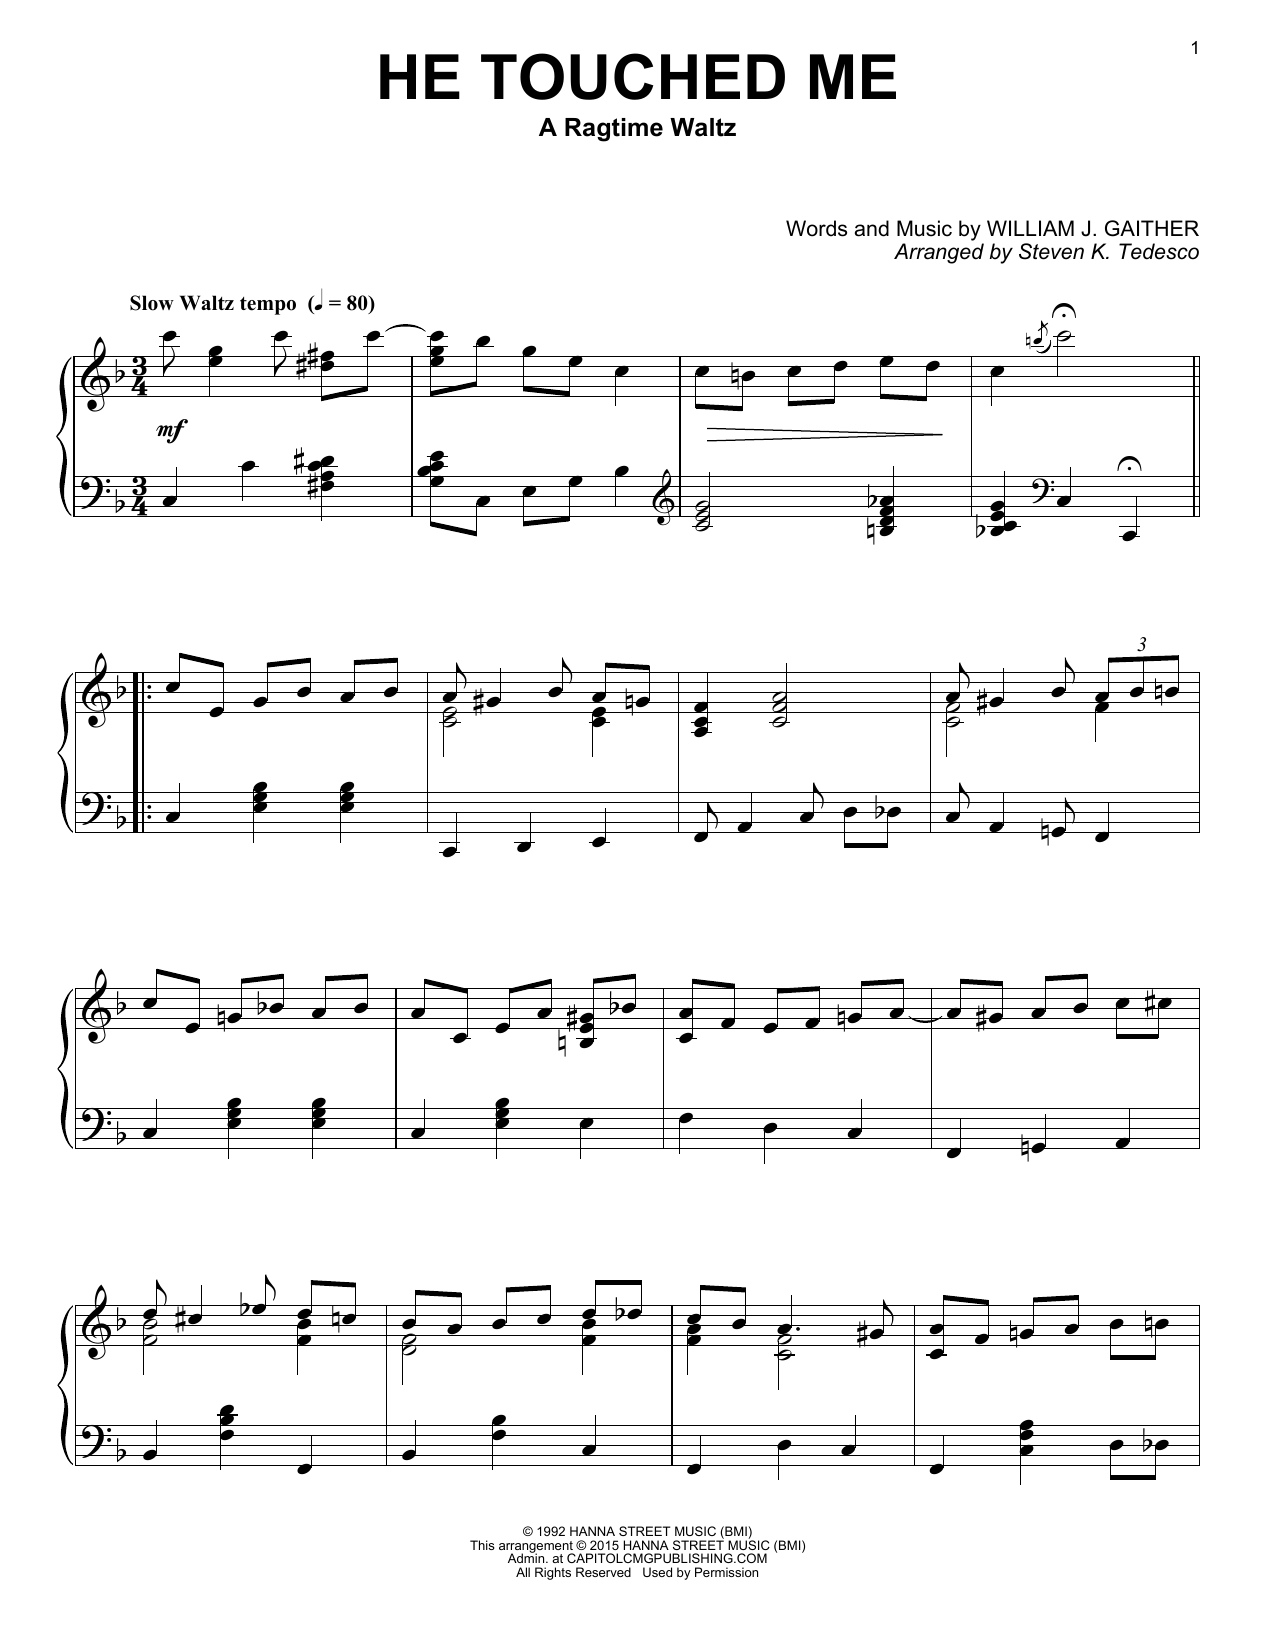 Steven K. Tedesco He Touched Me [Ragtime version] sheet music notes and chords. Download Printable PDF.